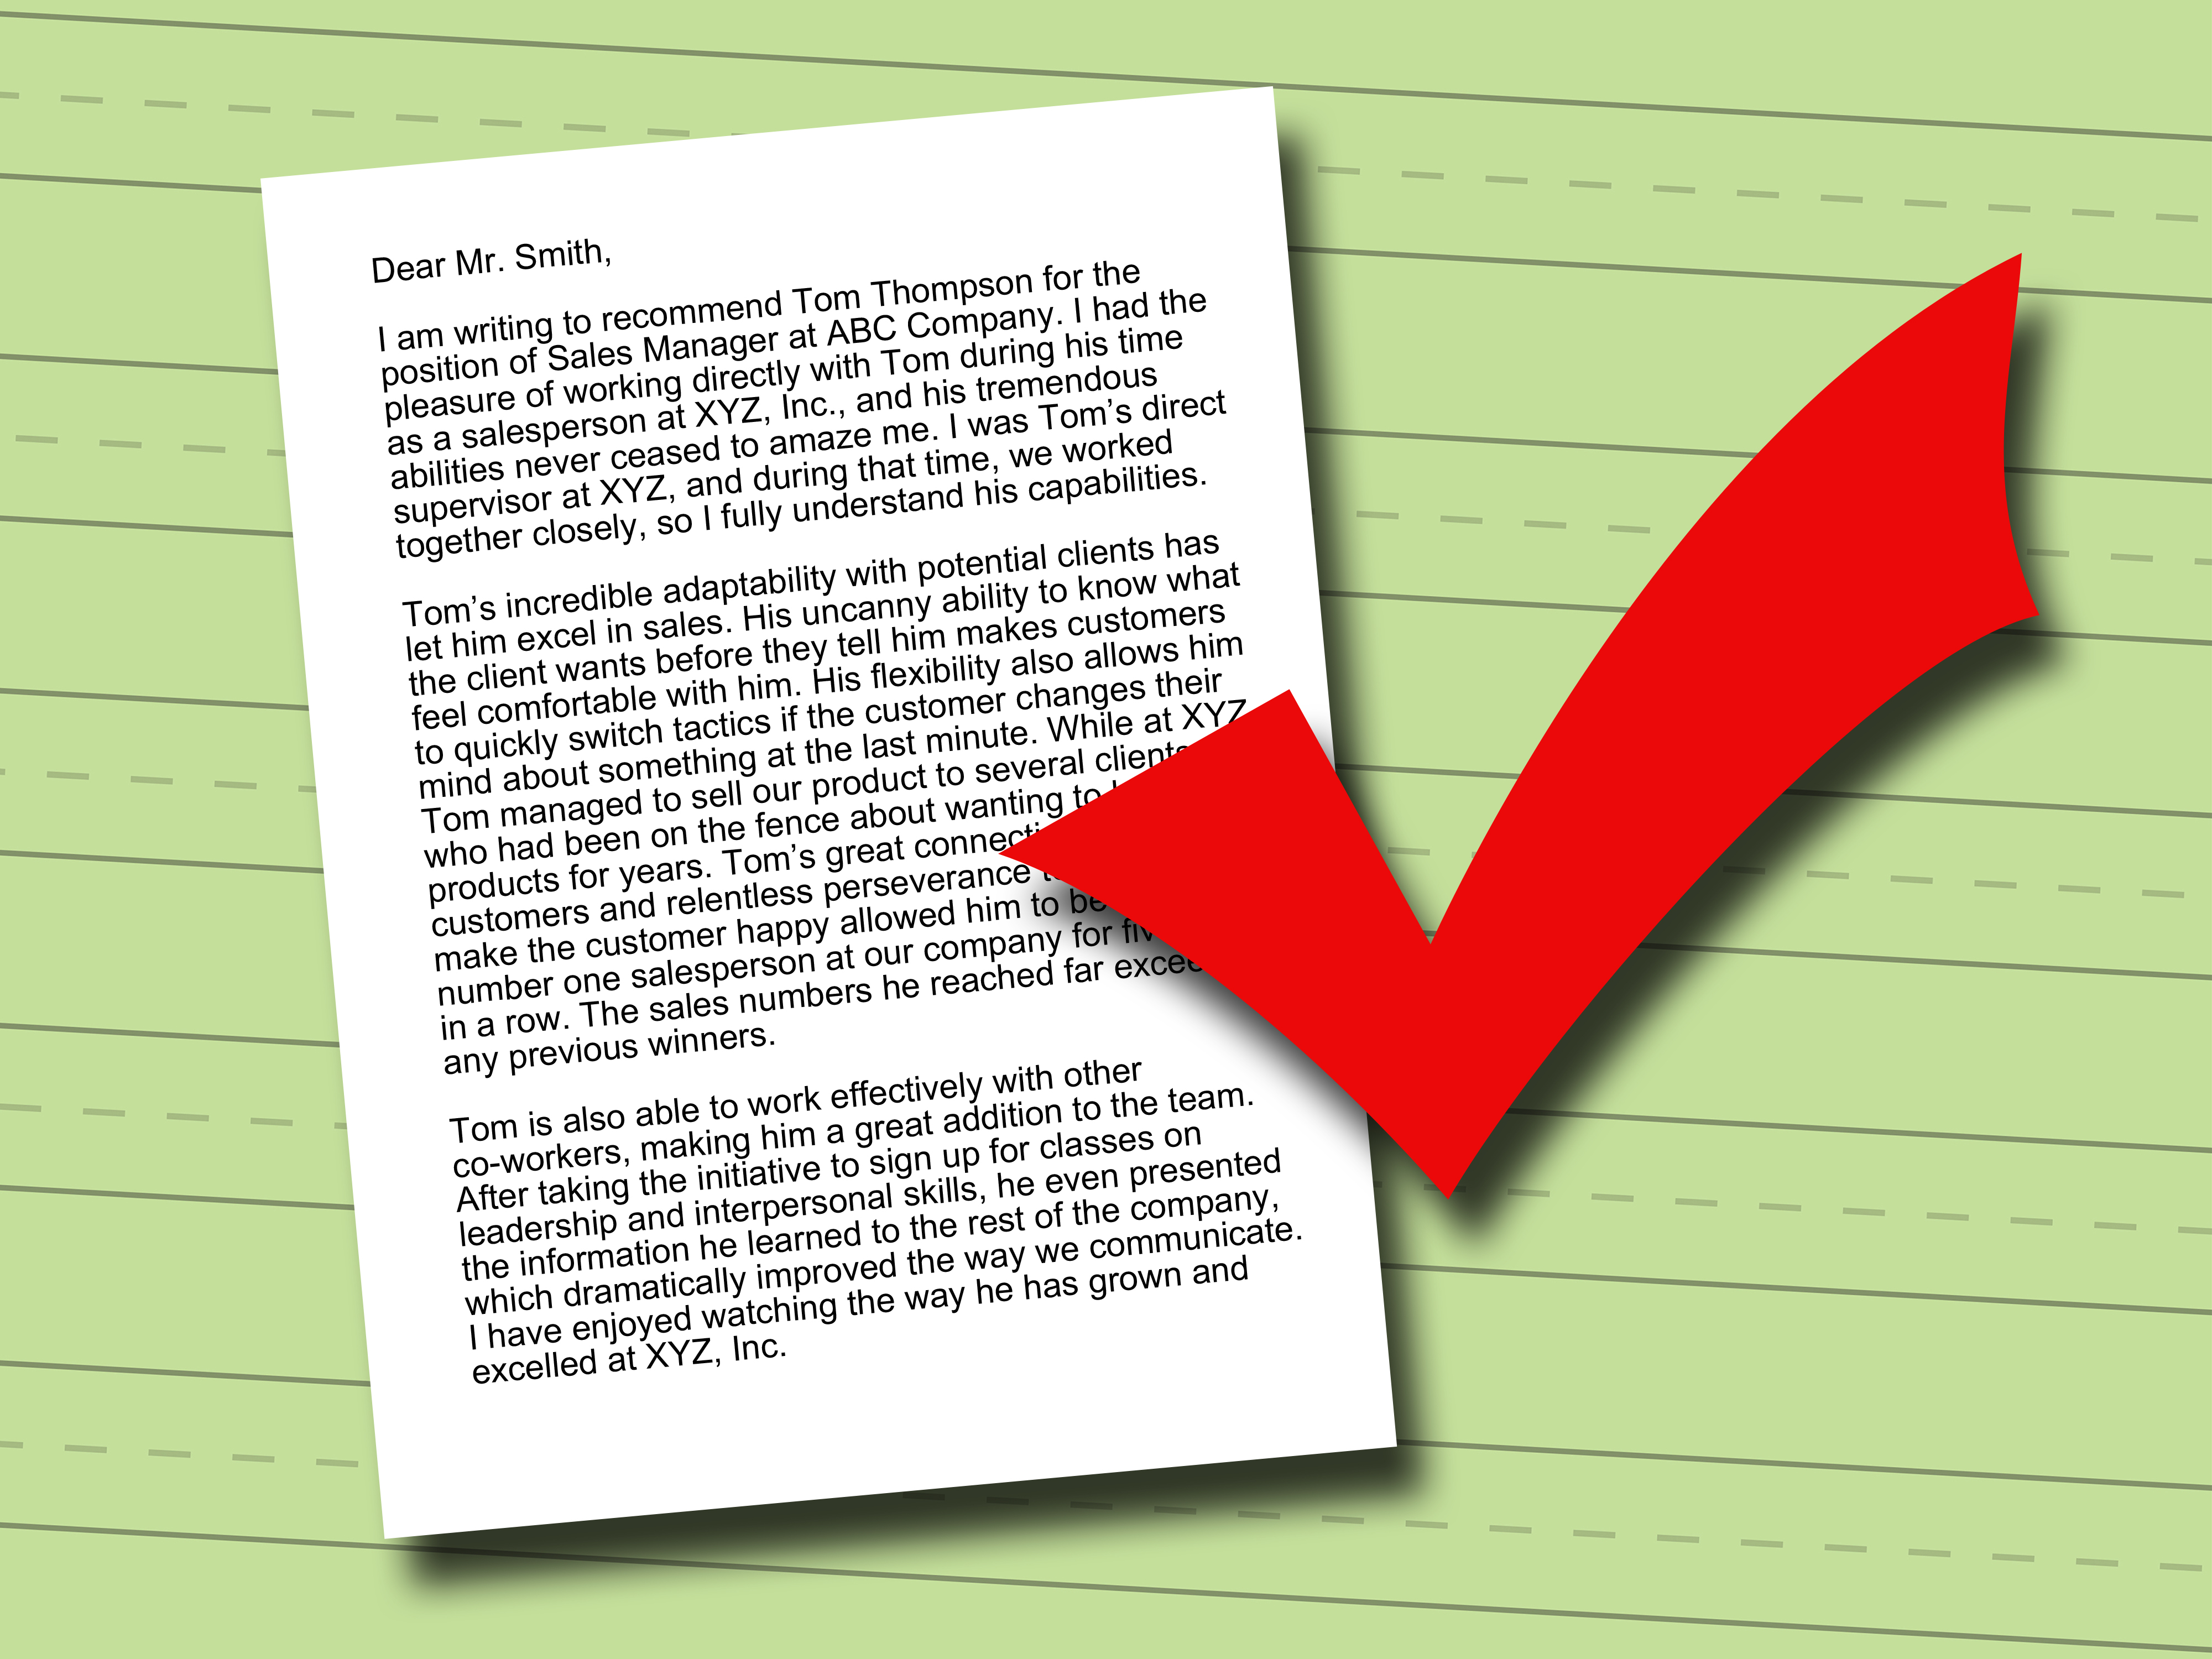 Should You Write That Letter of Recommendation? | Political Ethics